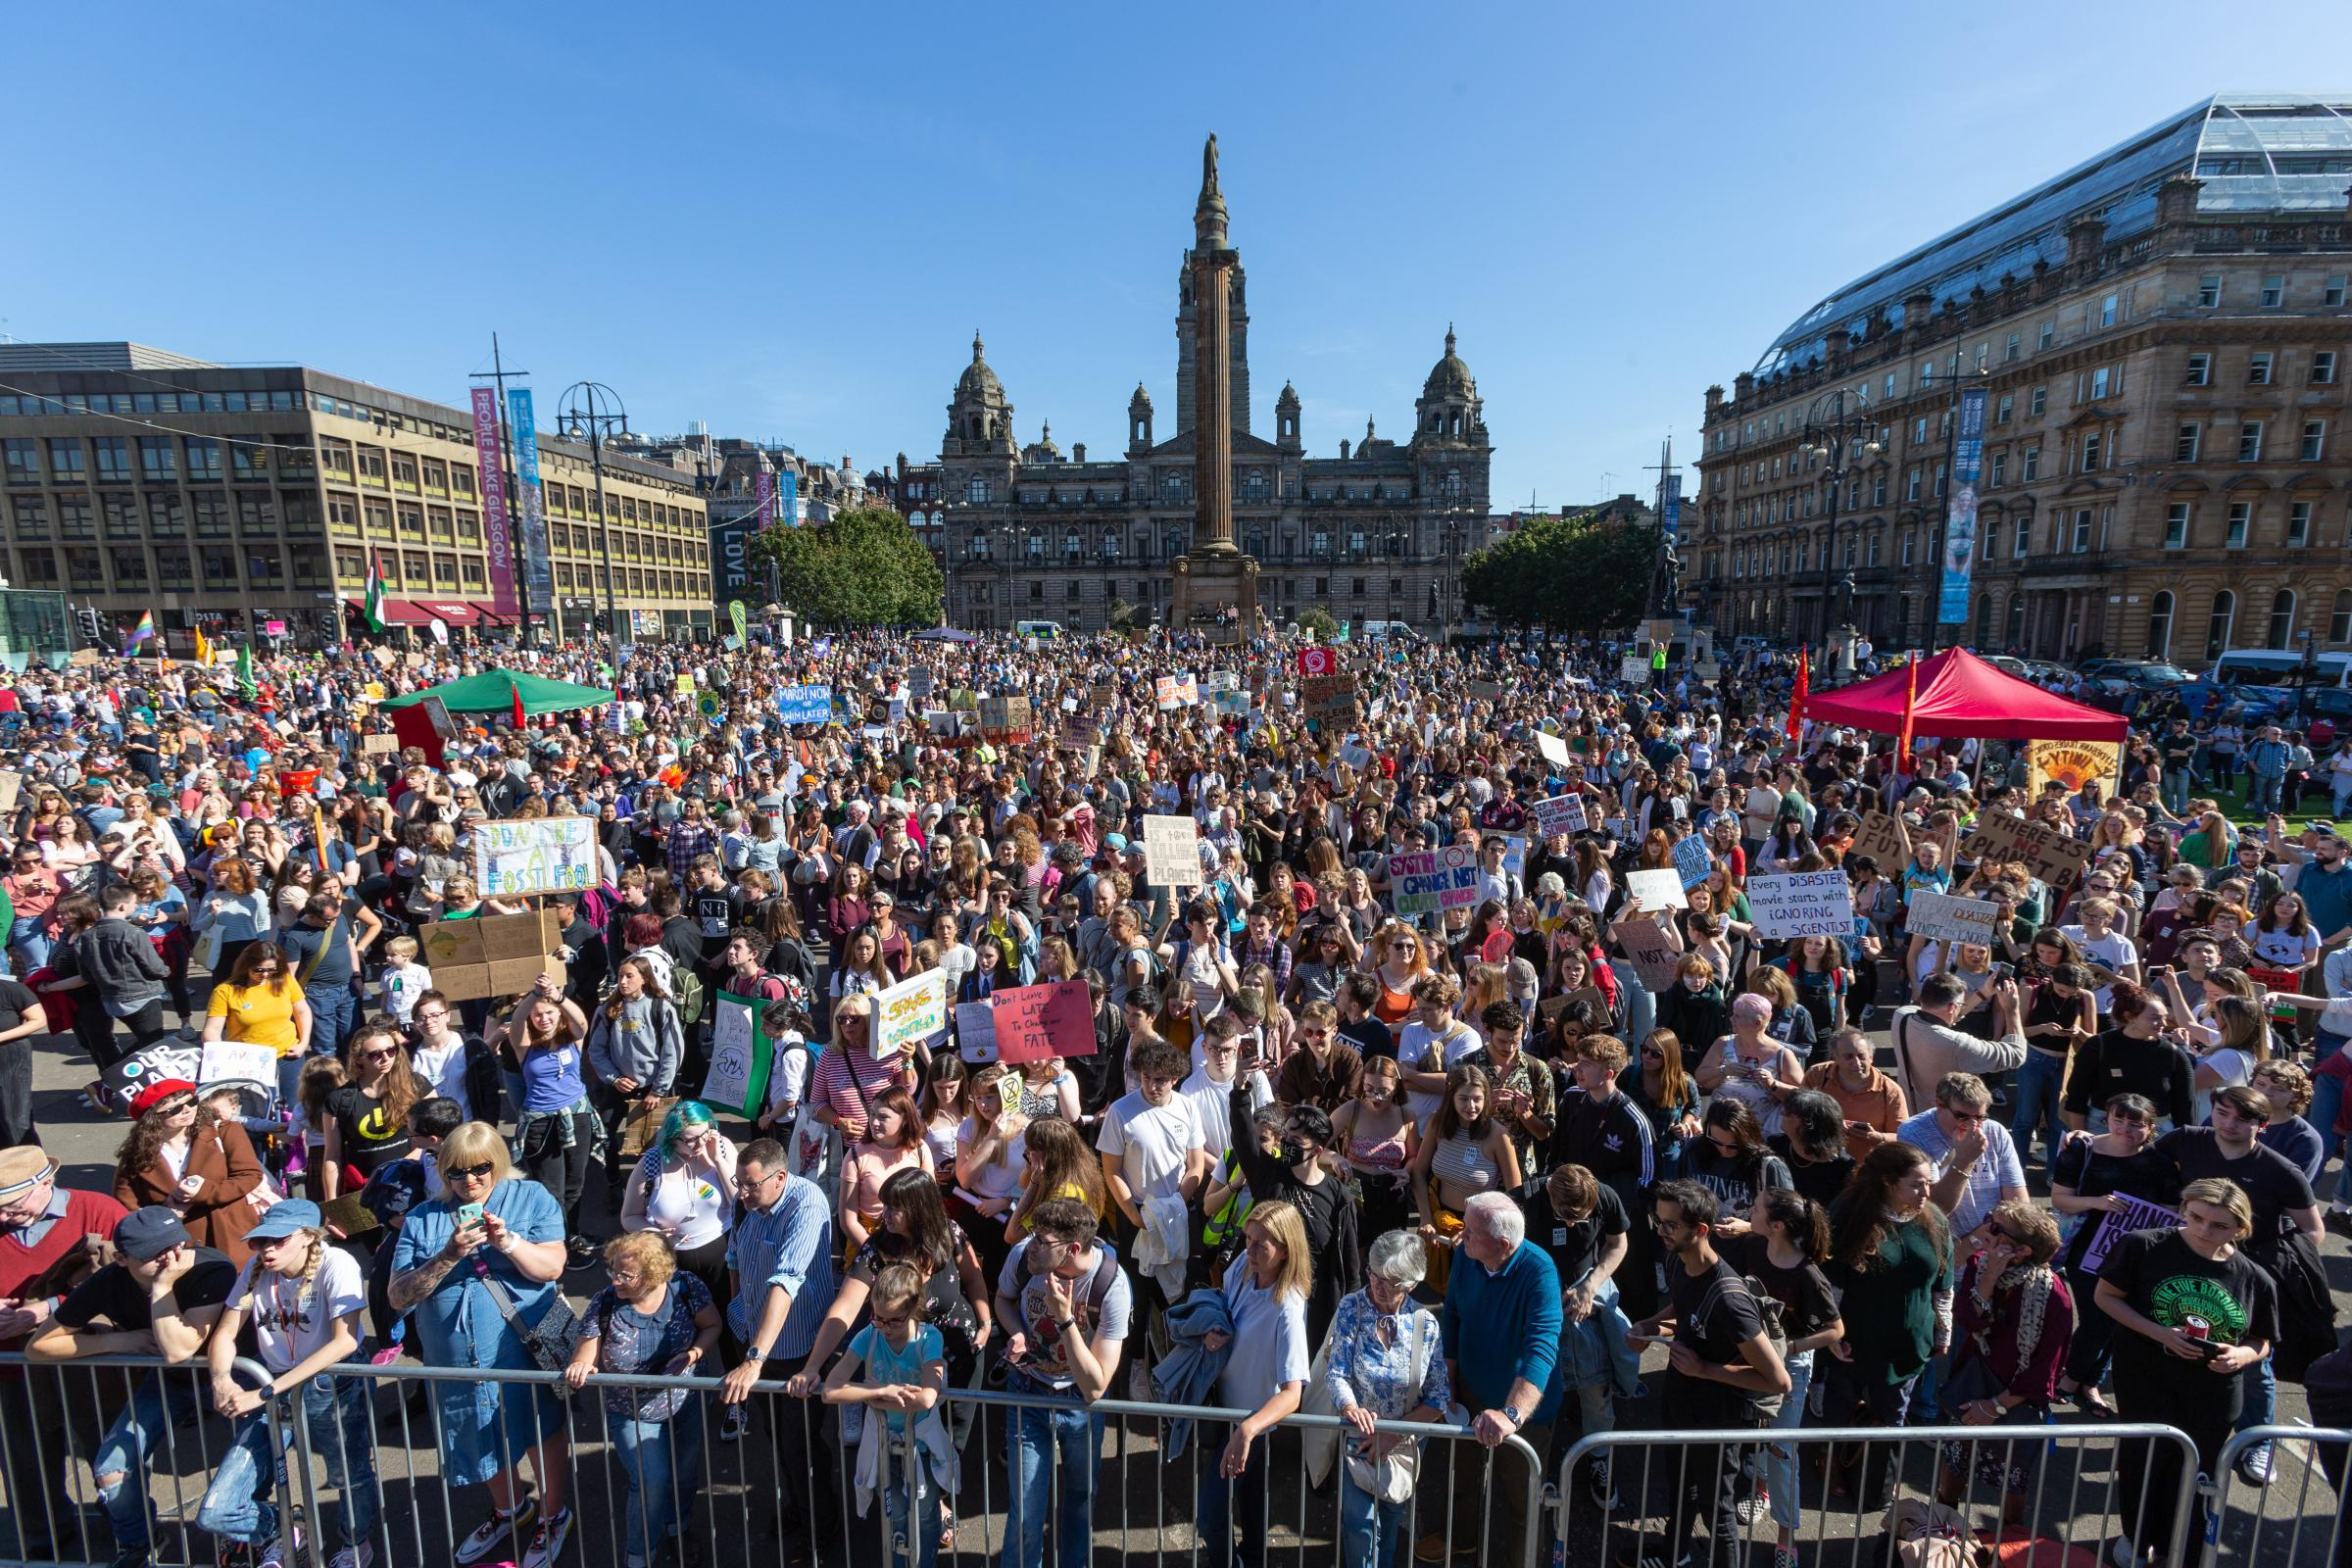 We Stand Together - thousands demand climate change action